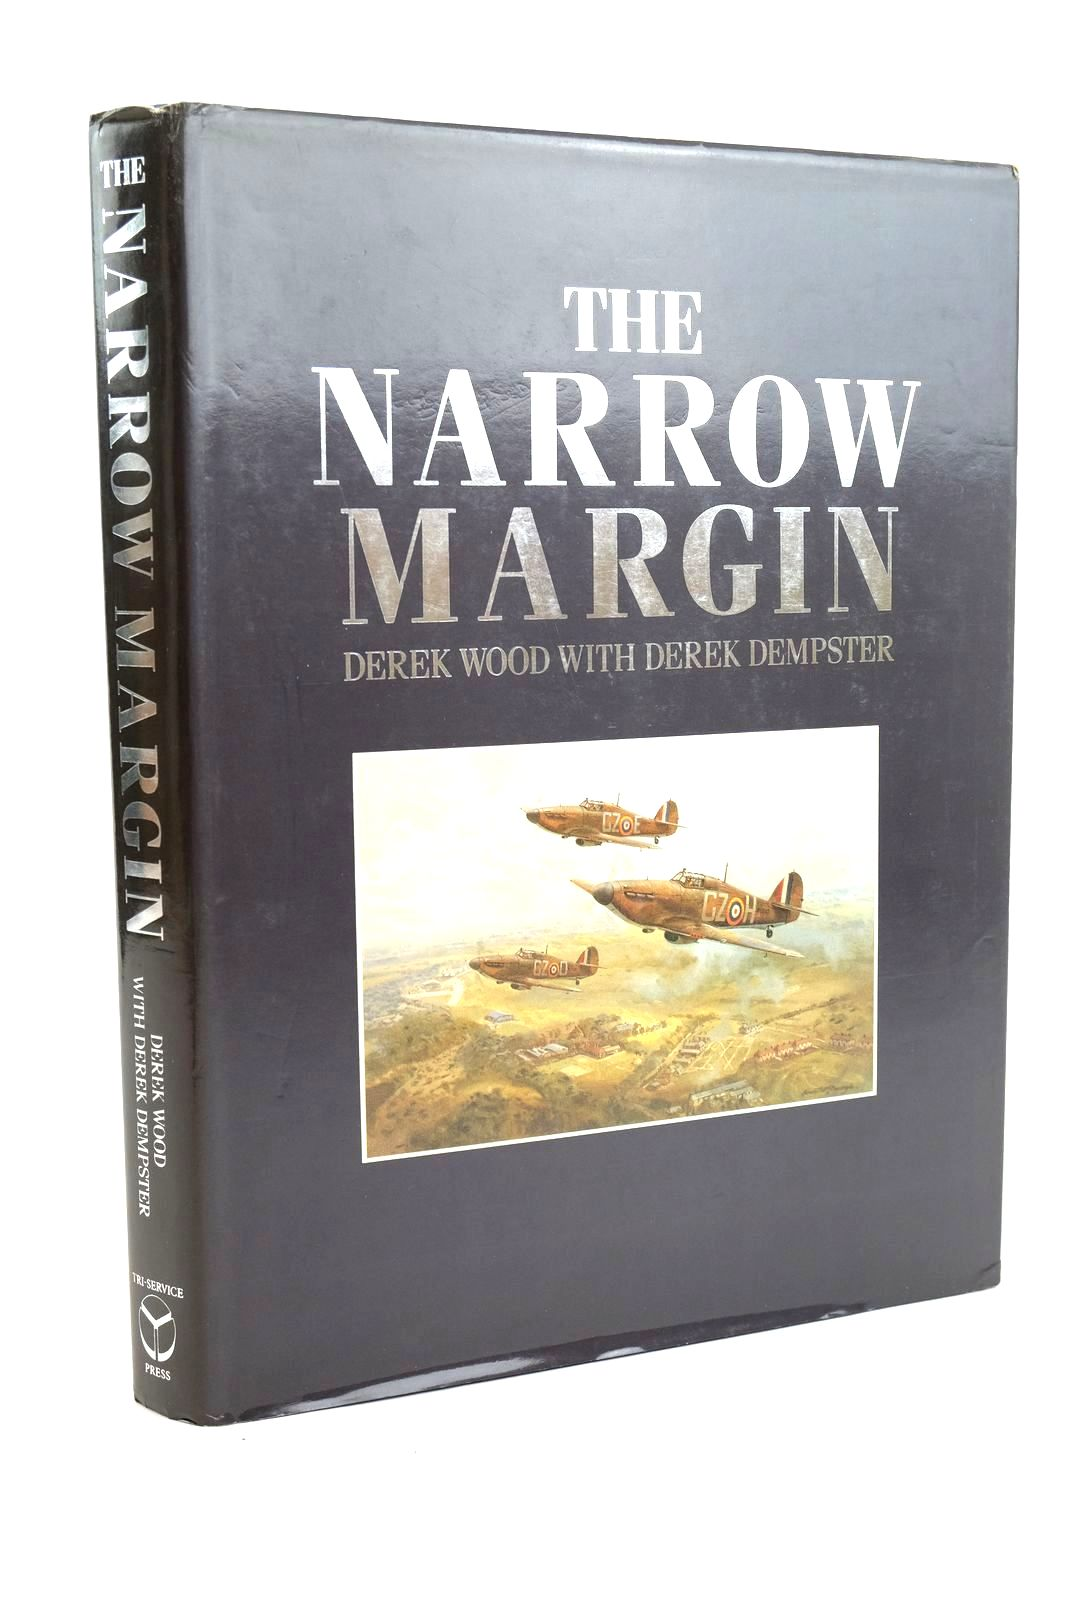 Photo of THE NARROW MARGIN: THE BATTLE OF BRITAIN AND THE RISE OF AIR POWER 1930-1940 written by Wood, Derek Dempster, Derek published by Tri-Service Press Ltd (STOCK CODE: 1320156)  for sale by Stella & Rose's Books